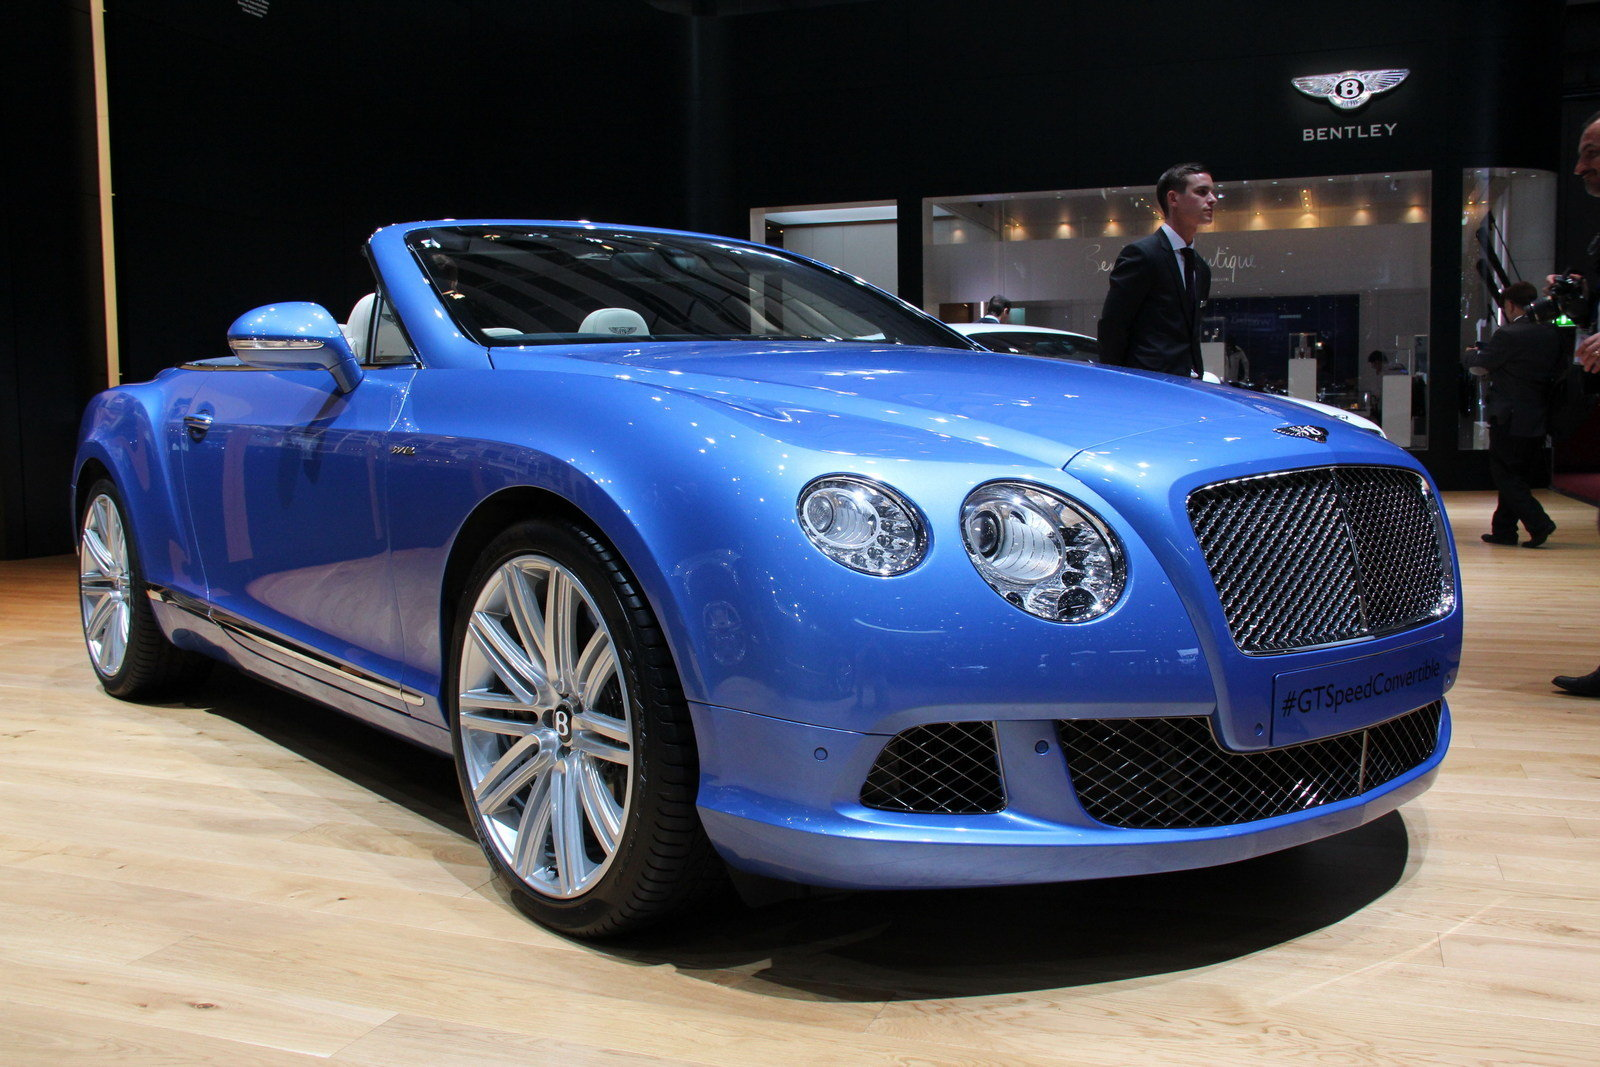 2013 bentley continental gt speed convertible picture. Black Bedroom Furniture Sets. Home Design Ideas